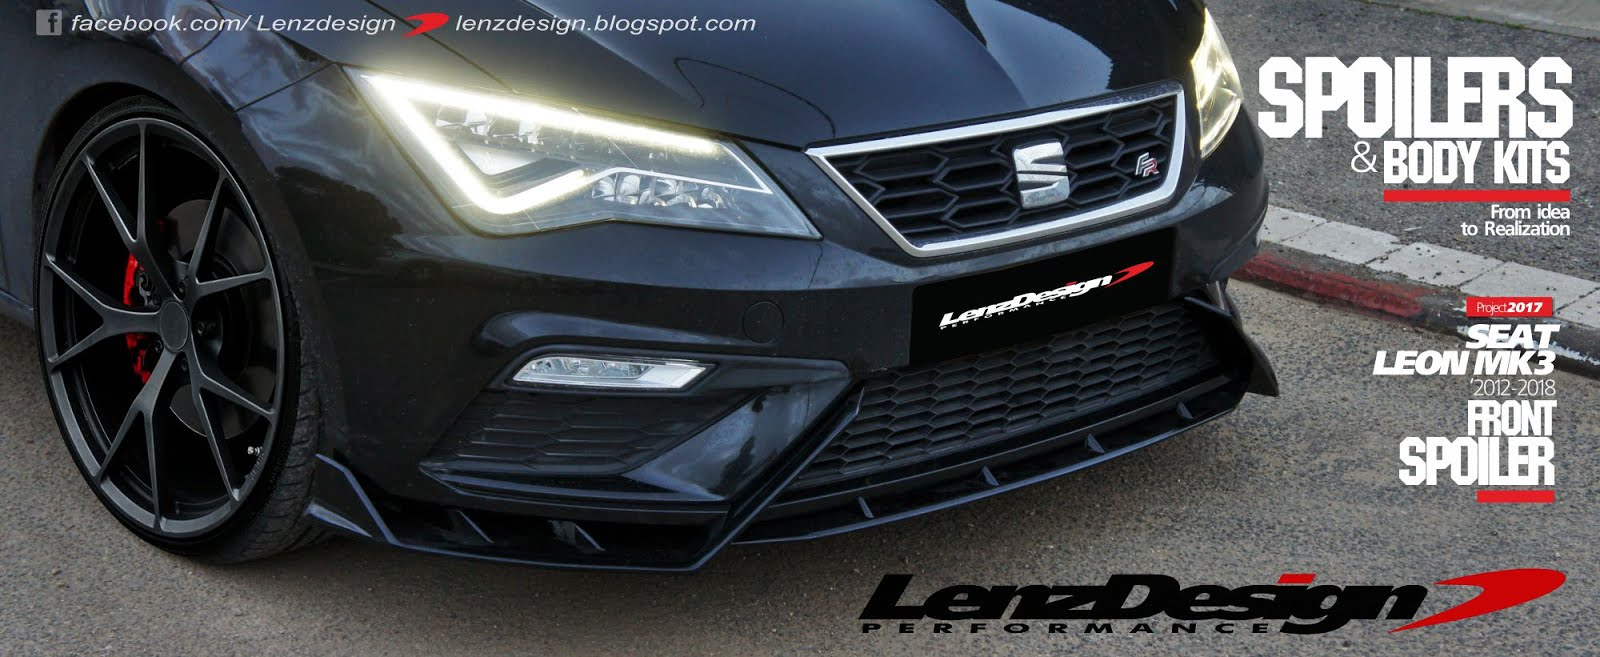 Lenzdesign Performance - Spoilers & Body Kits + Carbon Fiber Aero Parts